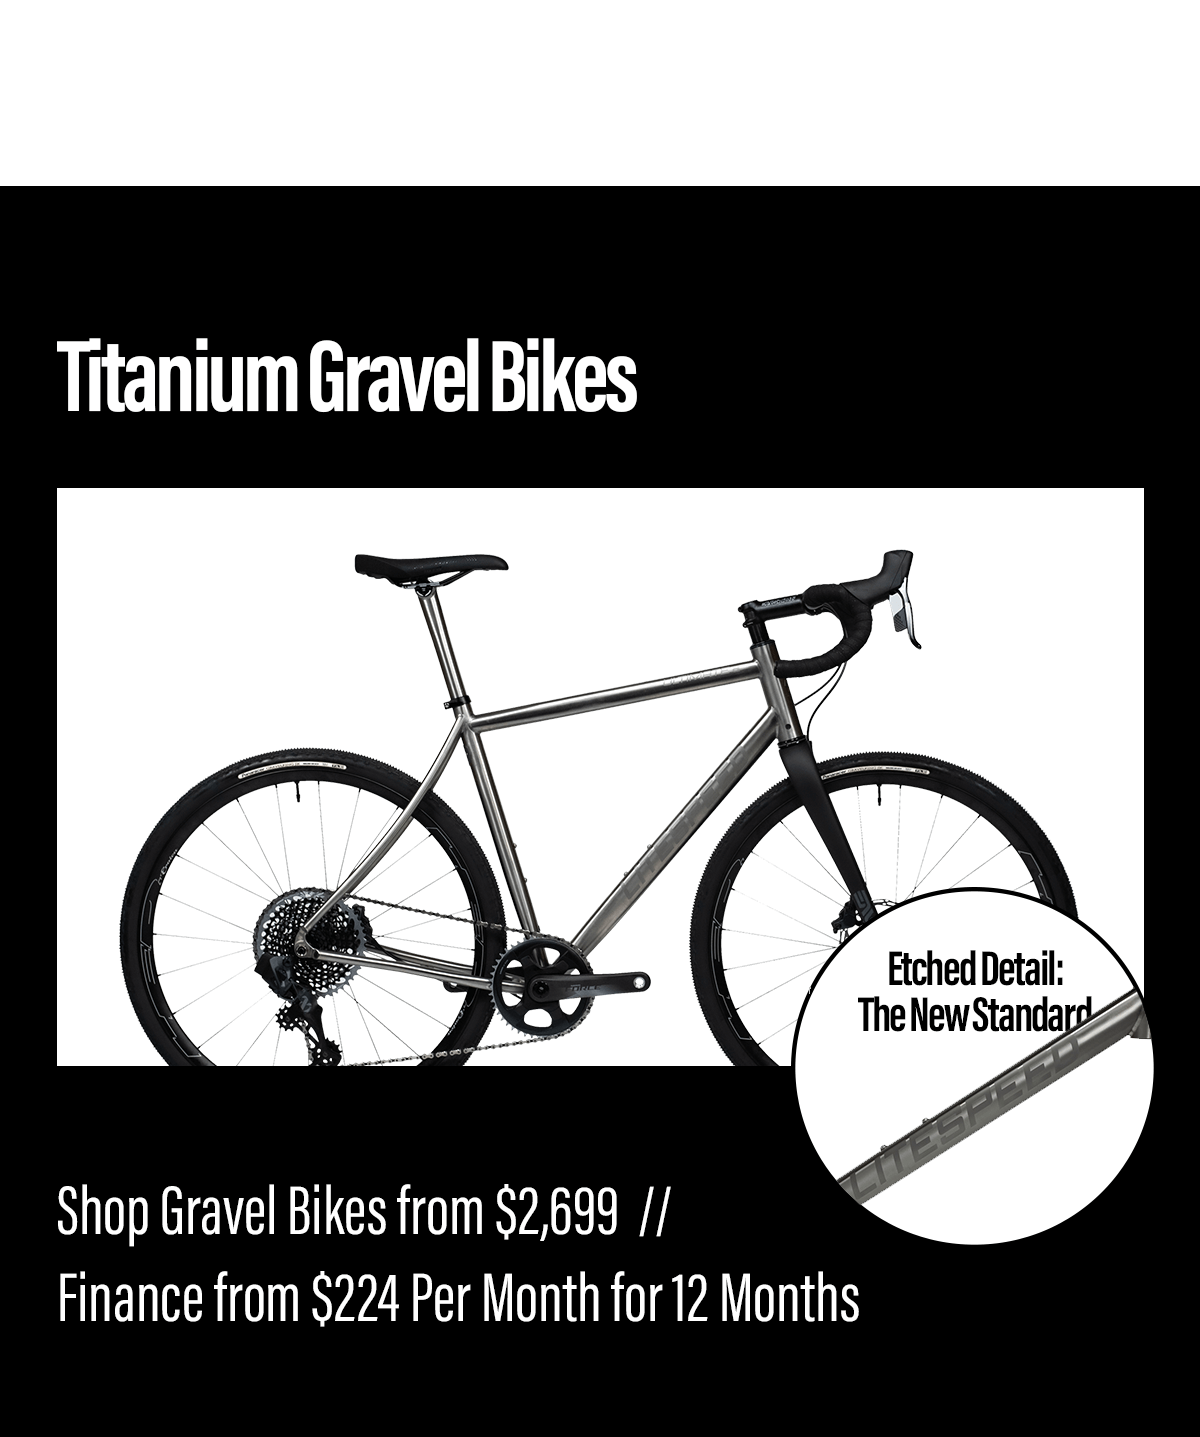 Experience the titanium difference! Shop titanium gravel bikes from $2,699.